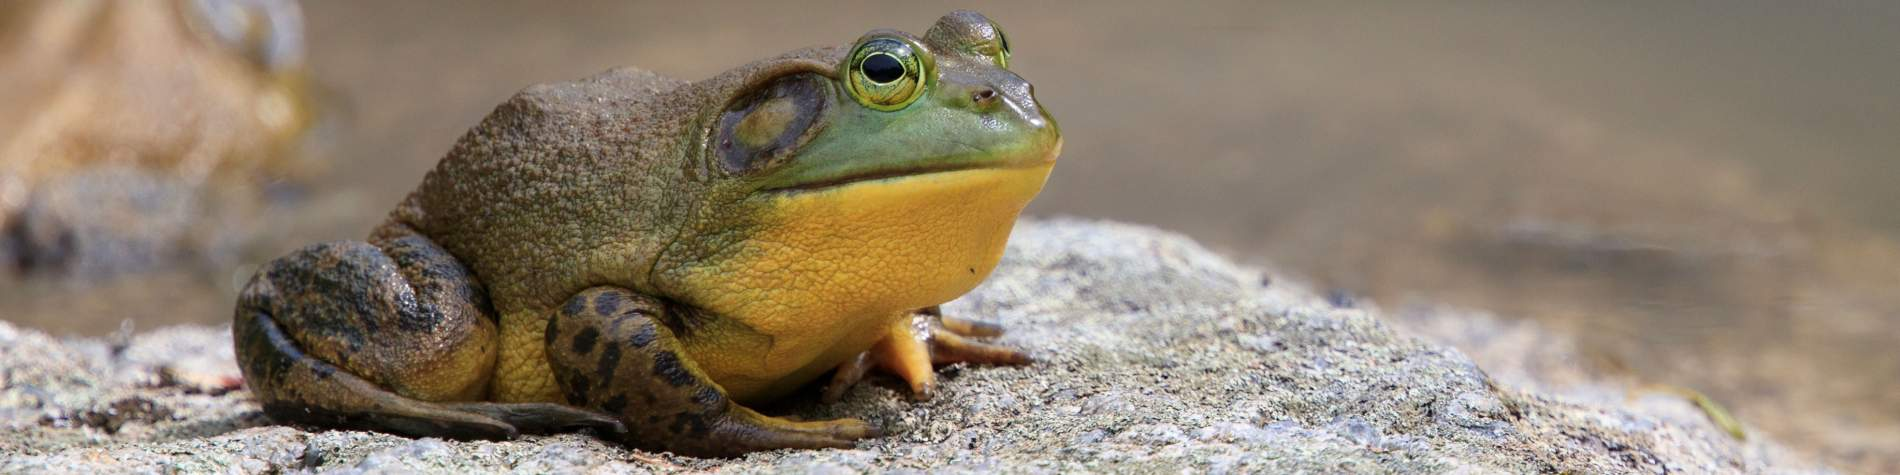 Bullfrog on land